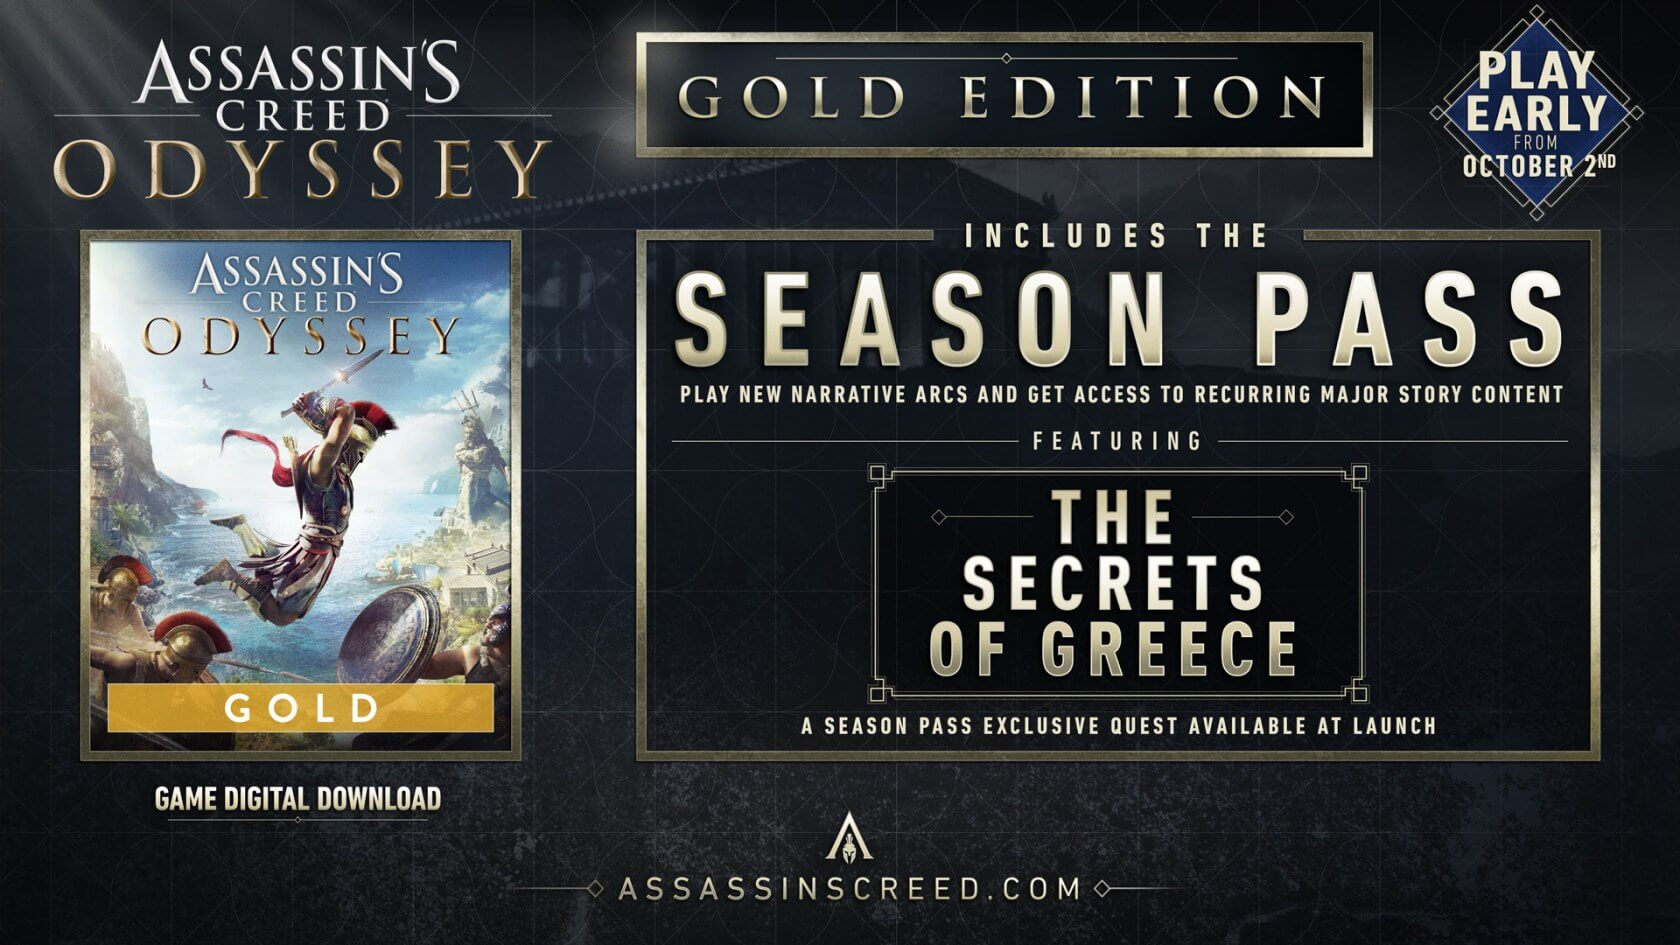 Ubisoft announces post-launch content for Assassin's Creed Odyssey